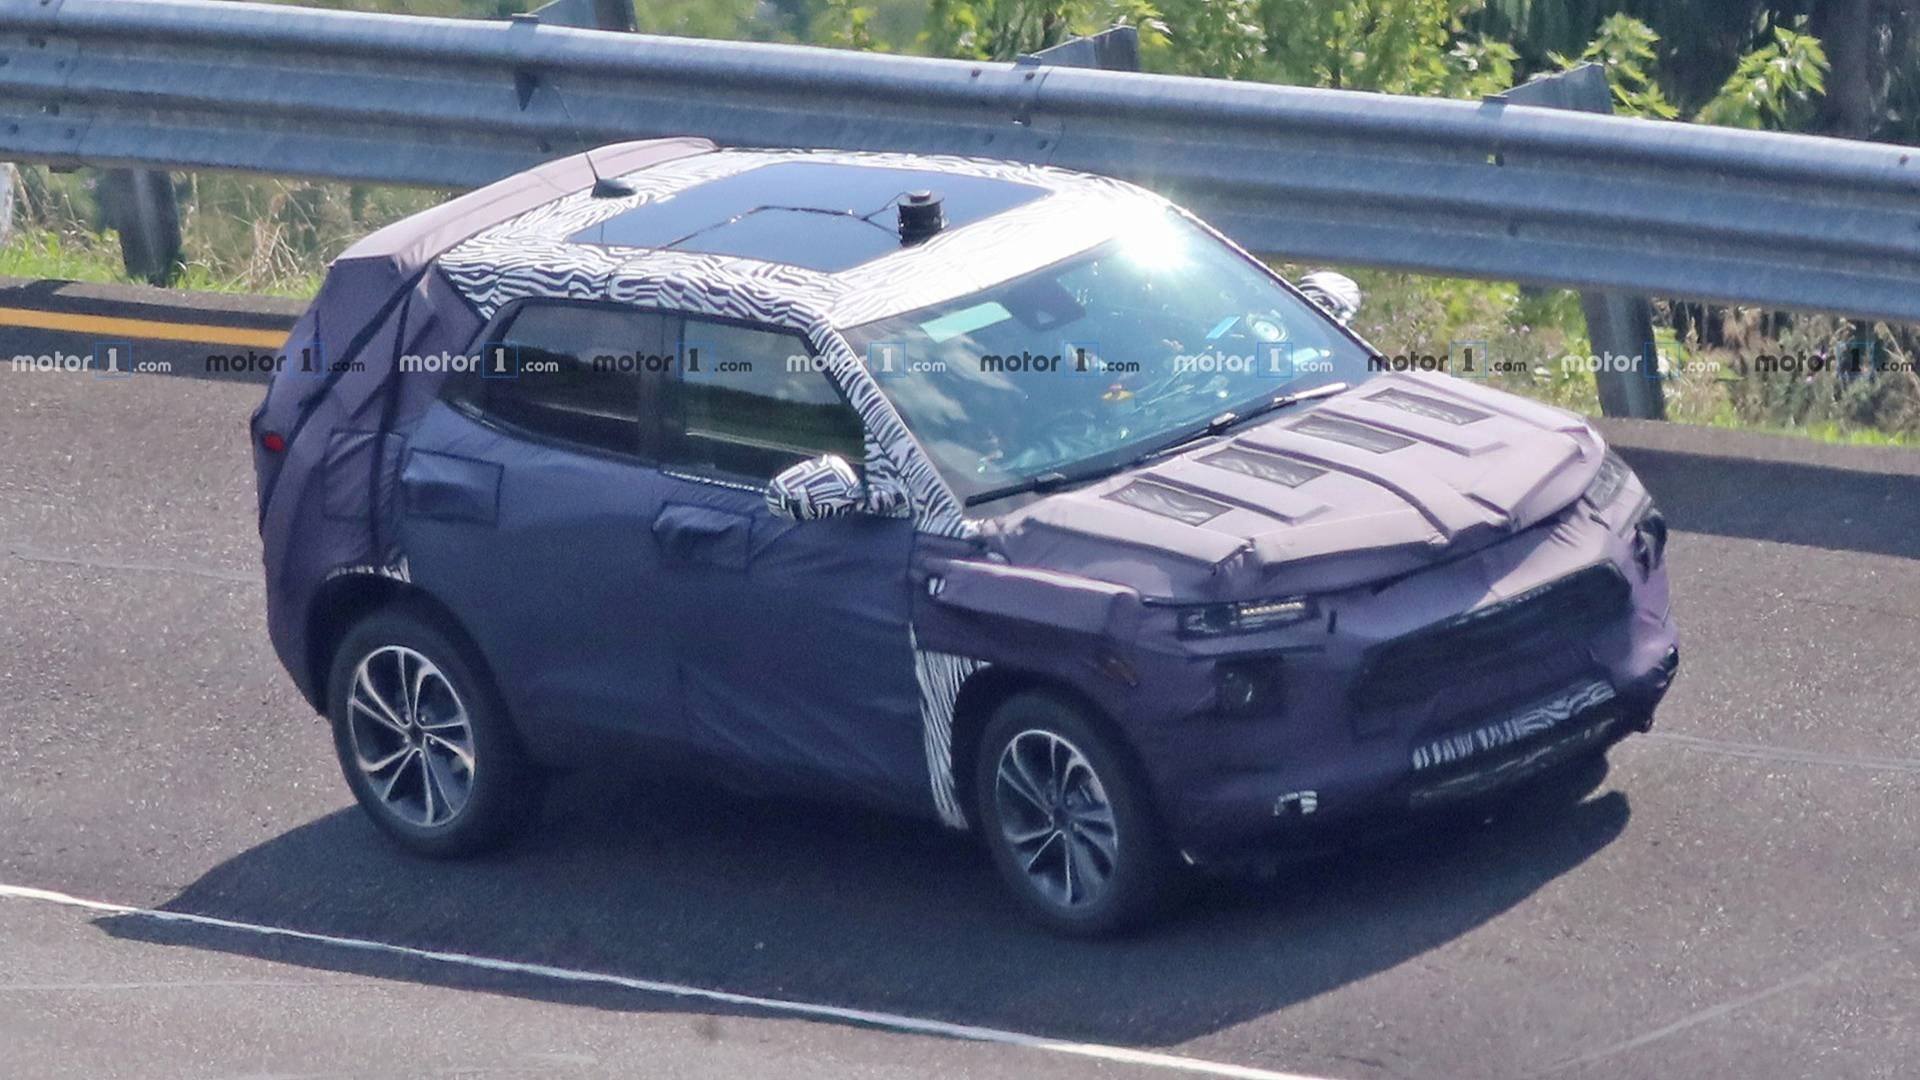 Redesigned 2020 Chevrolet Trax Suv Spied For The First Time Show Me A 2021 Chevy Trax